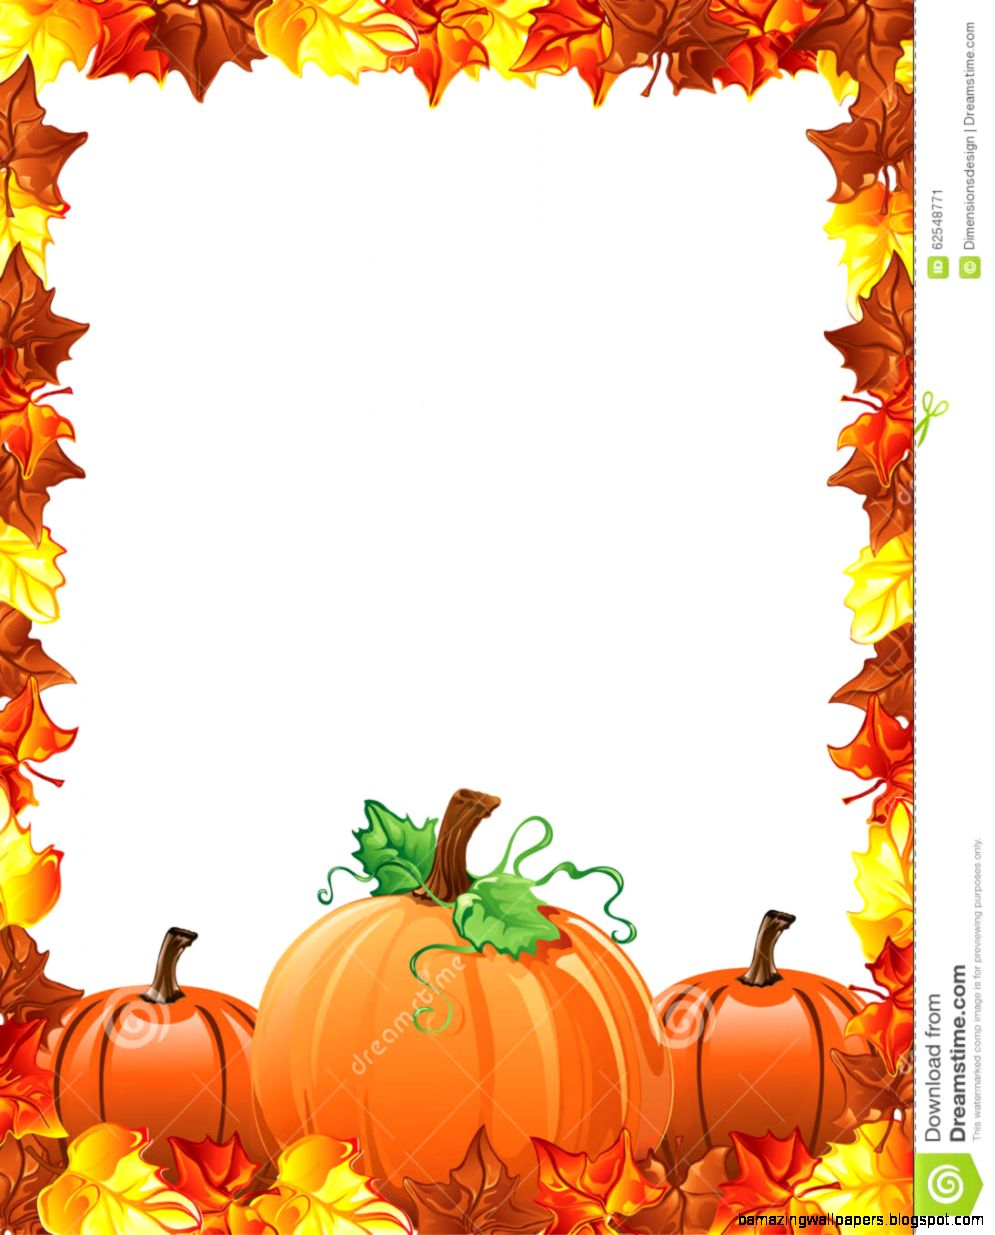 Fall Leaves And Pumpkins Border Stock Vector   Image 62548771